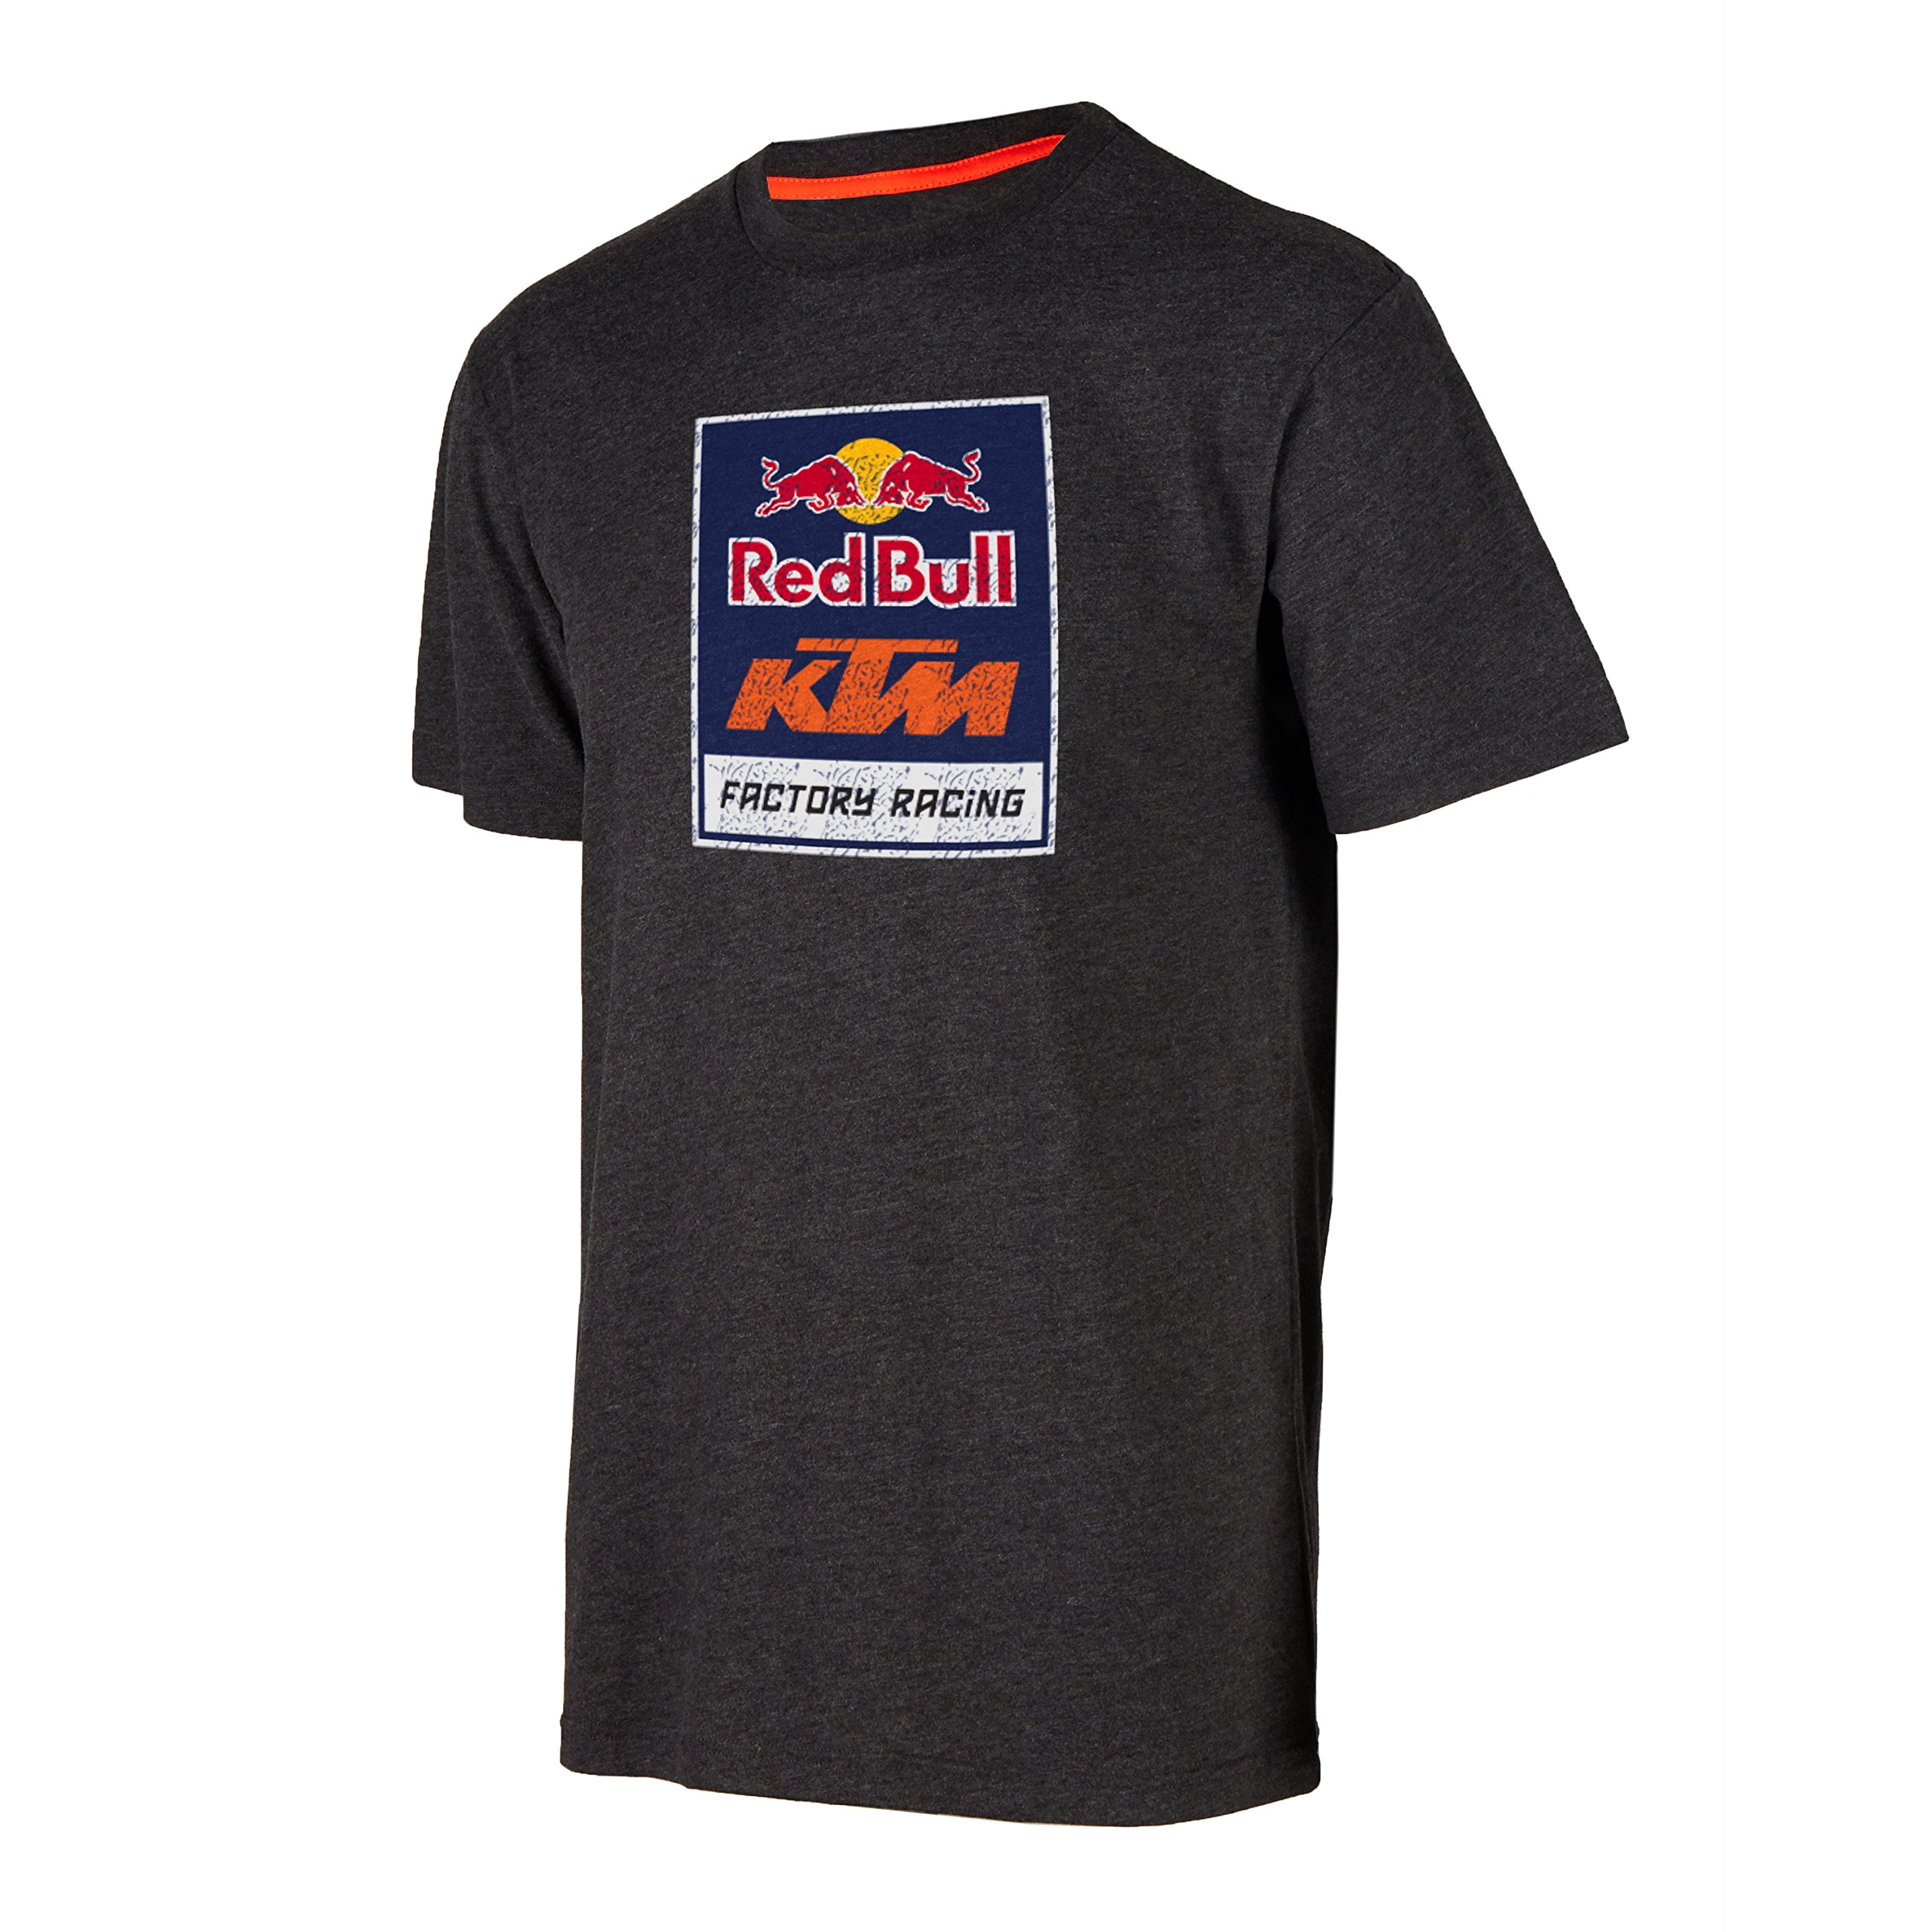 Red Bull Official Logo Red Bull Ktm Factory Racing